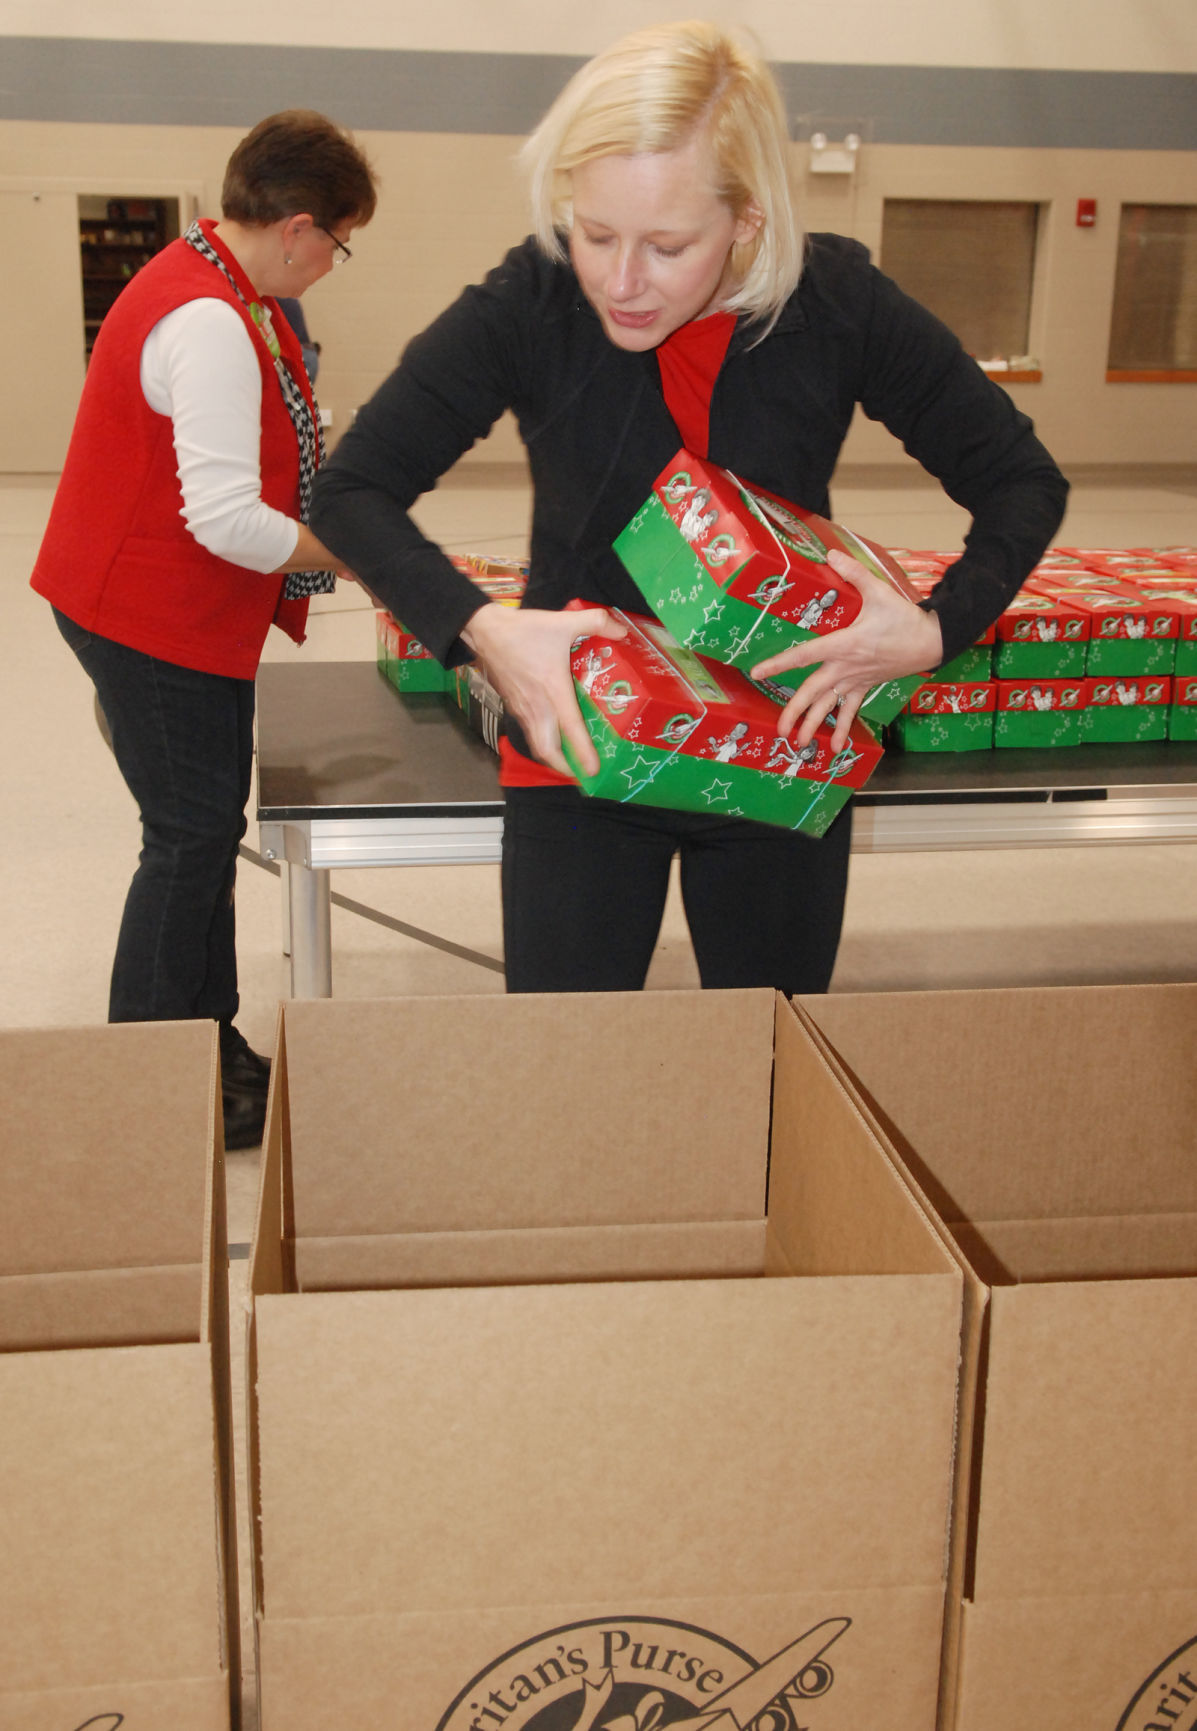 Operation Christmas Child Boxes.Residents Filling Shoeboxes With Gifts For Operation